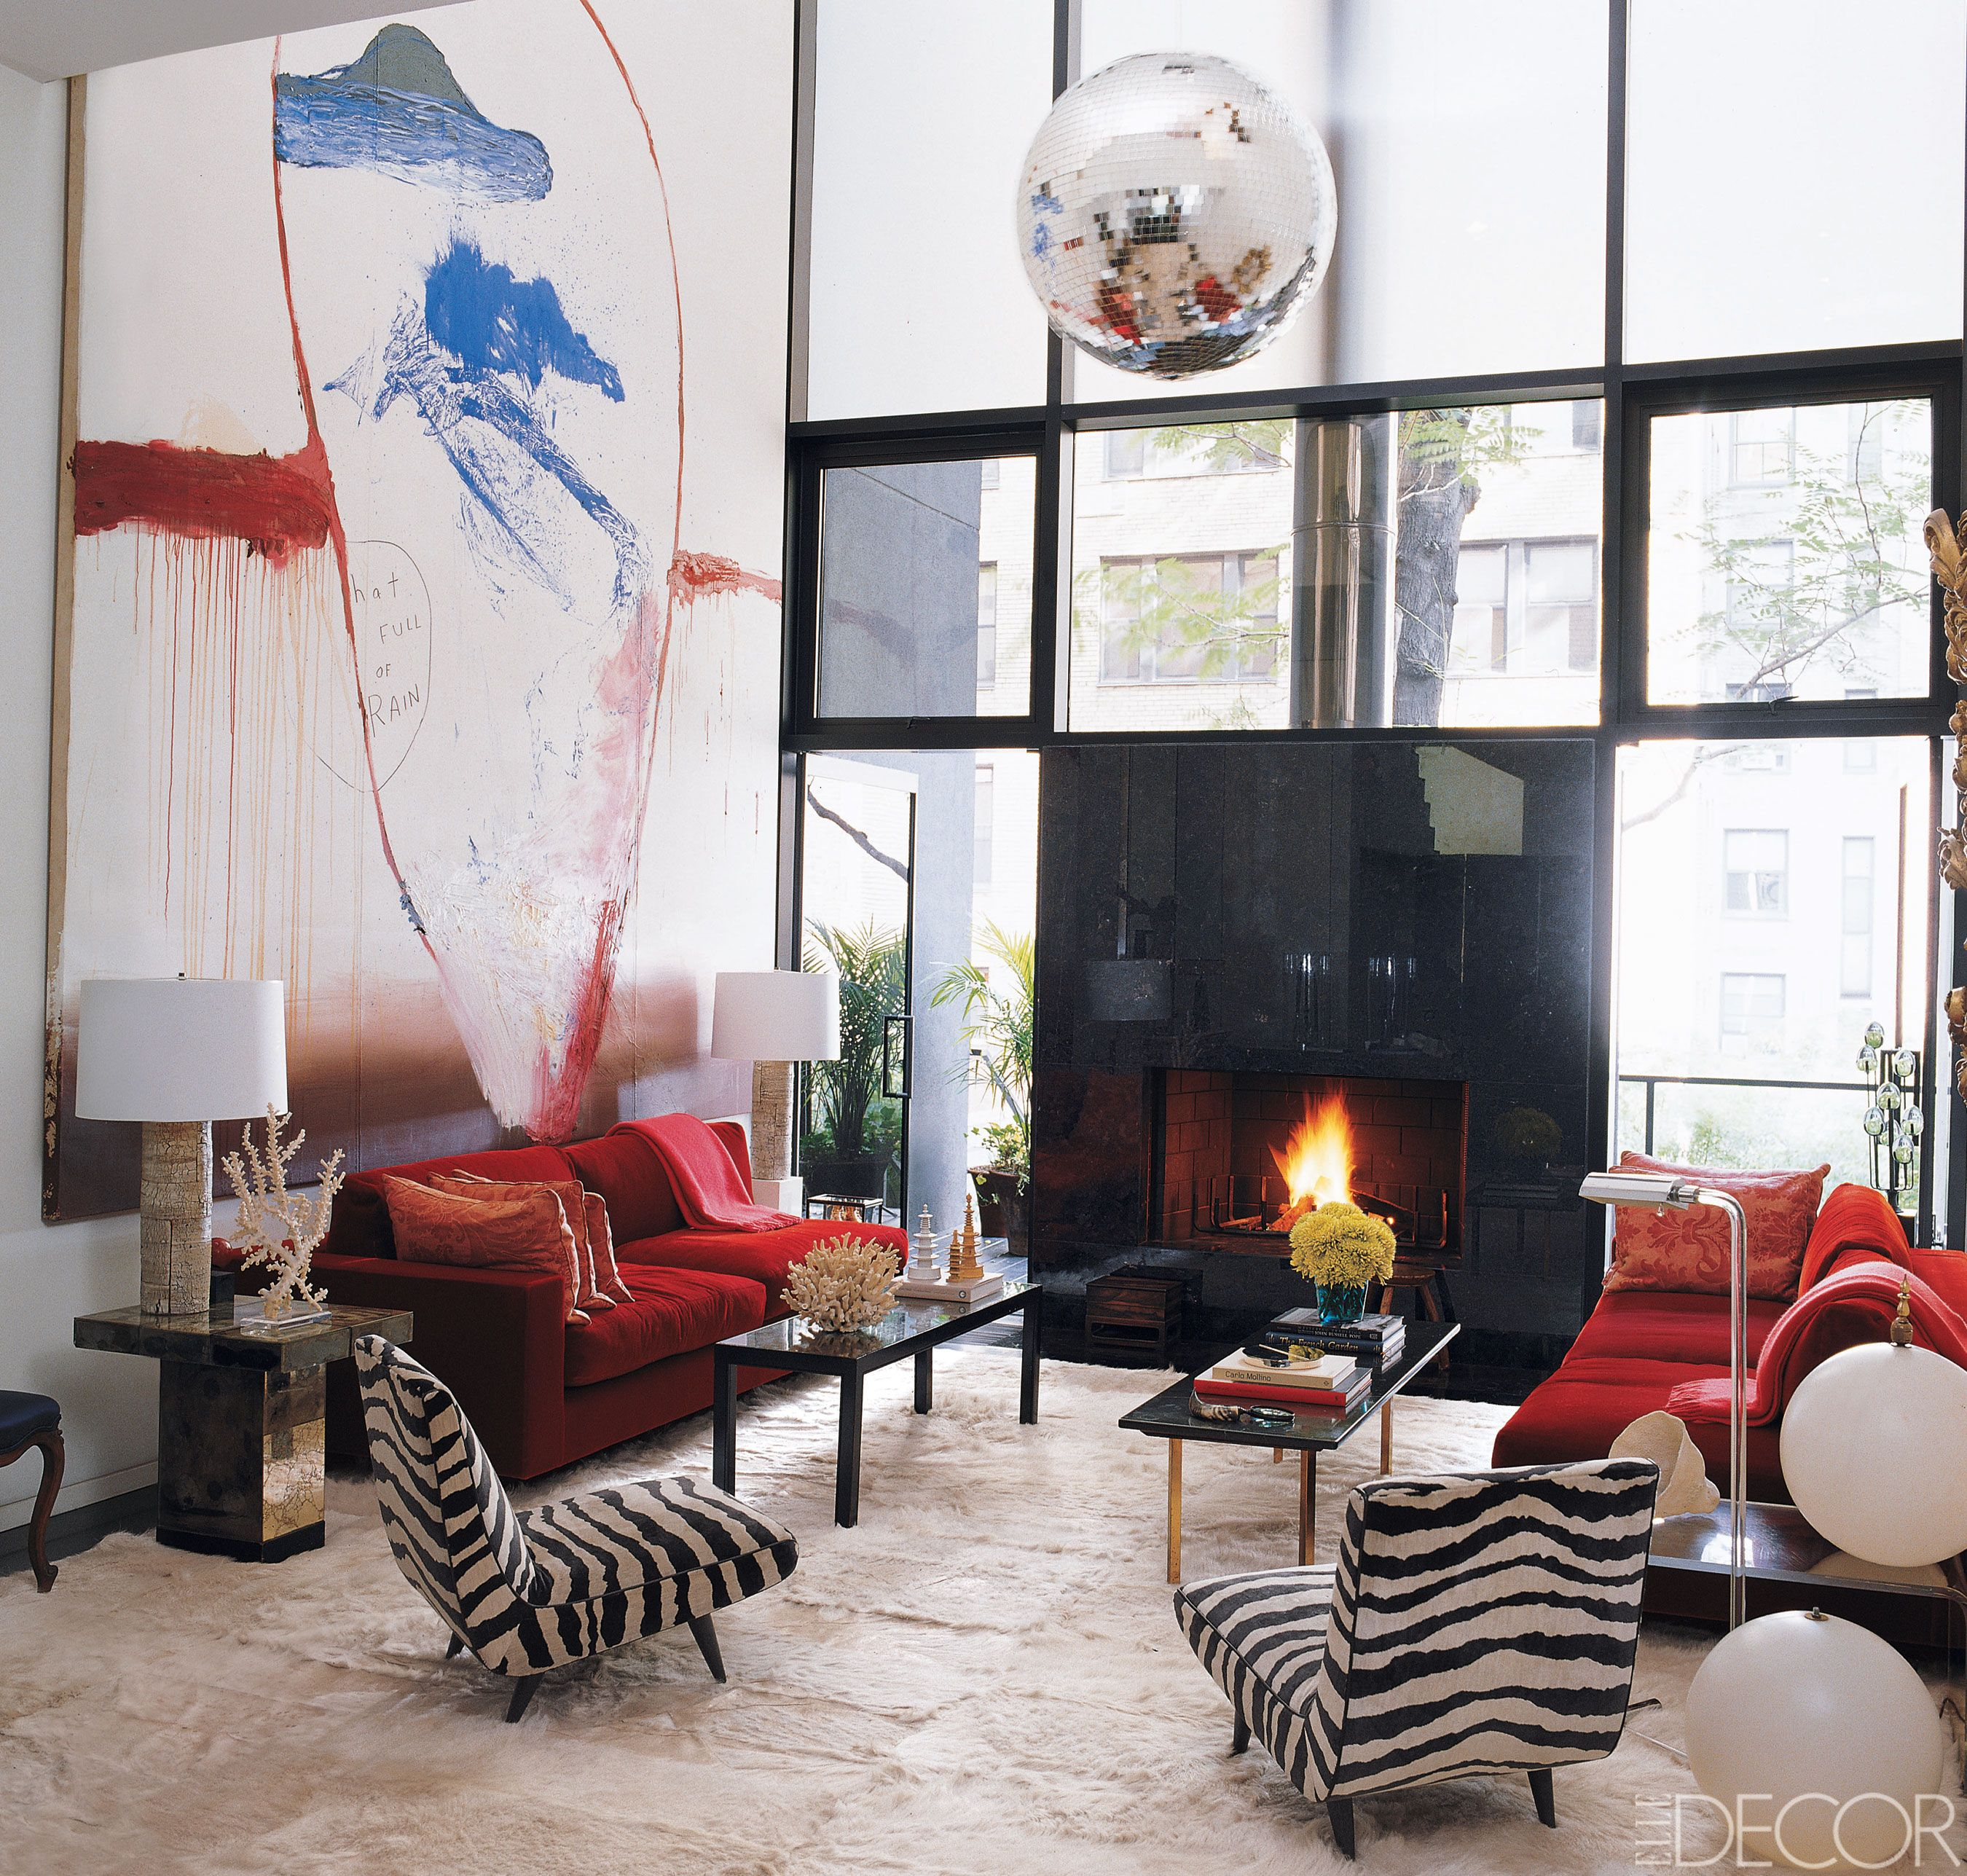 10 Creative And Inexpensive Diy Ideas Fireplace Drawing Sketch